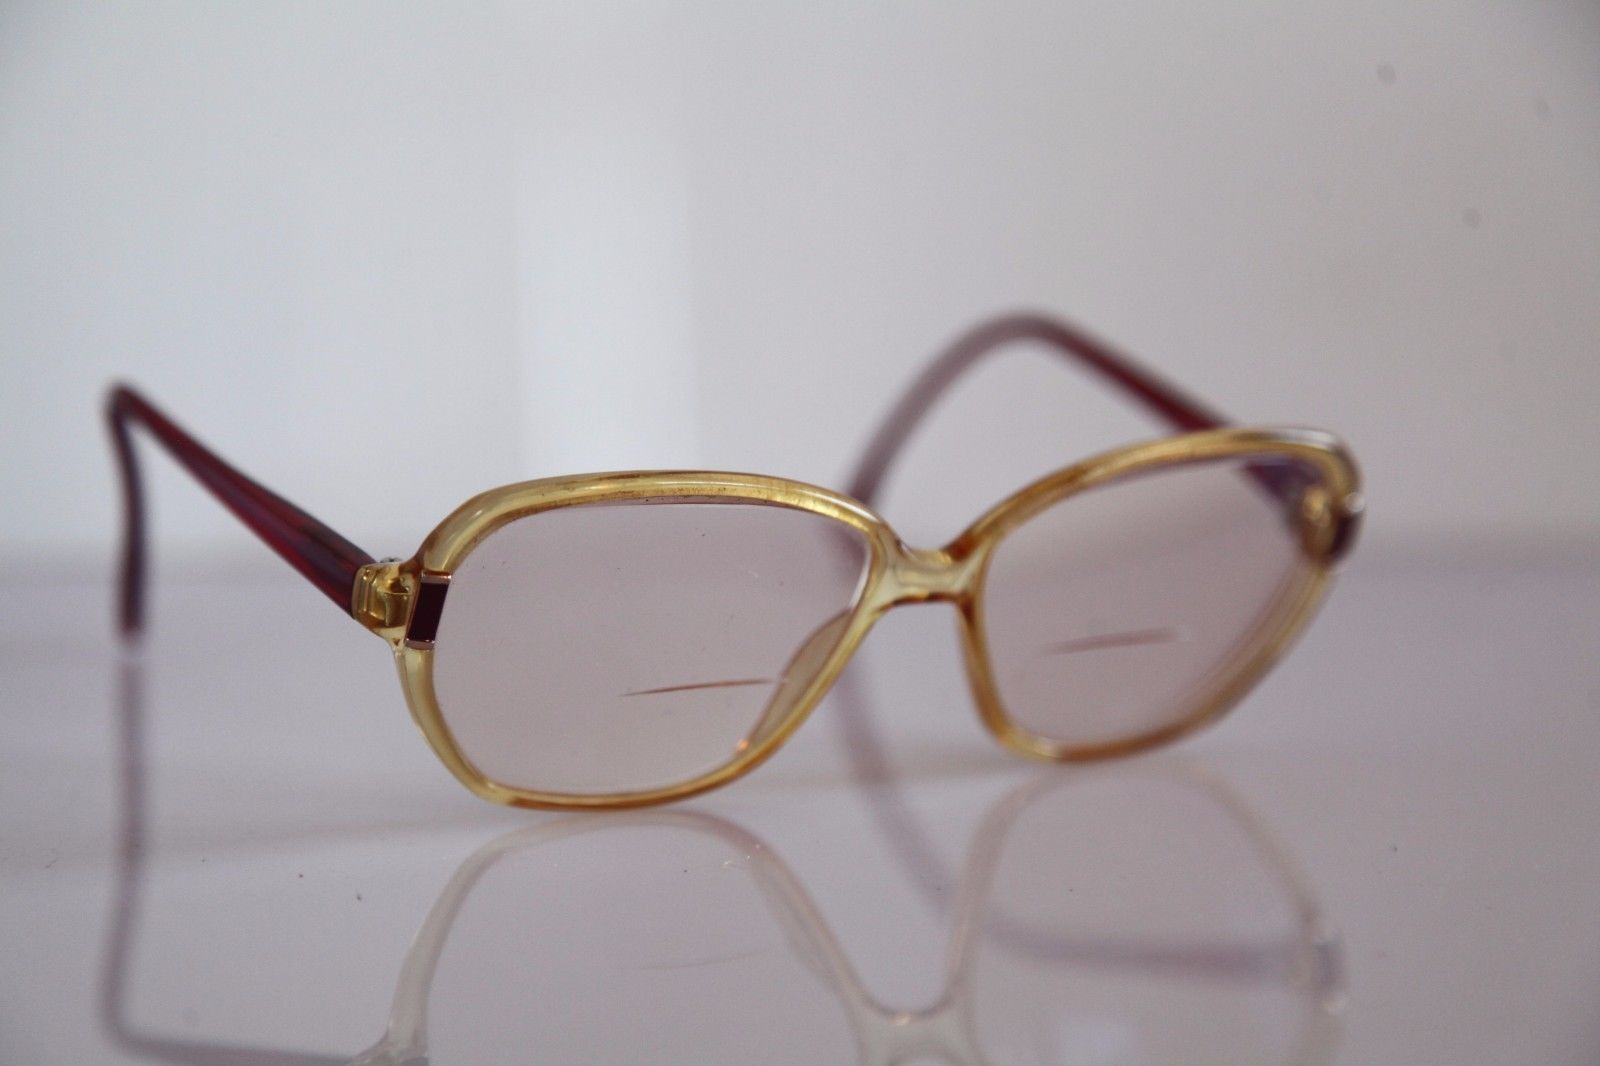 ZEISS Eyewear, Crystal Gold, Red, Frame,  RX-Able Prescription lenses. Germany